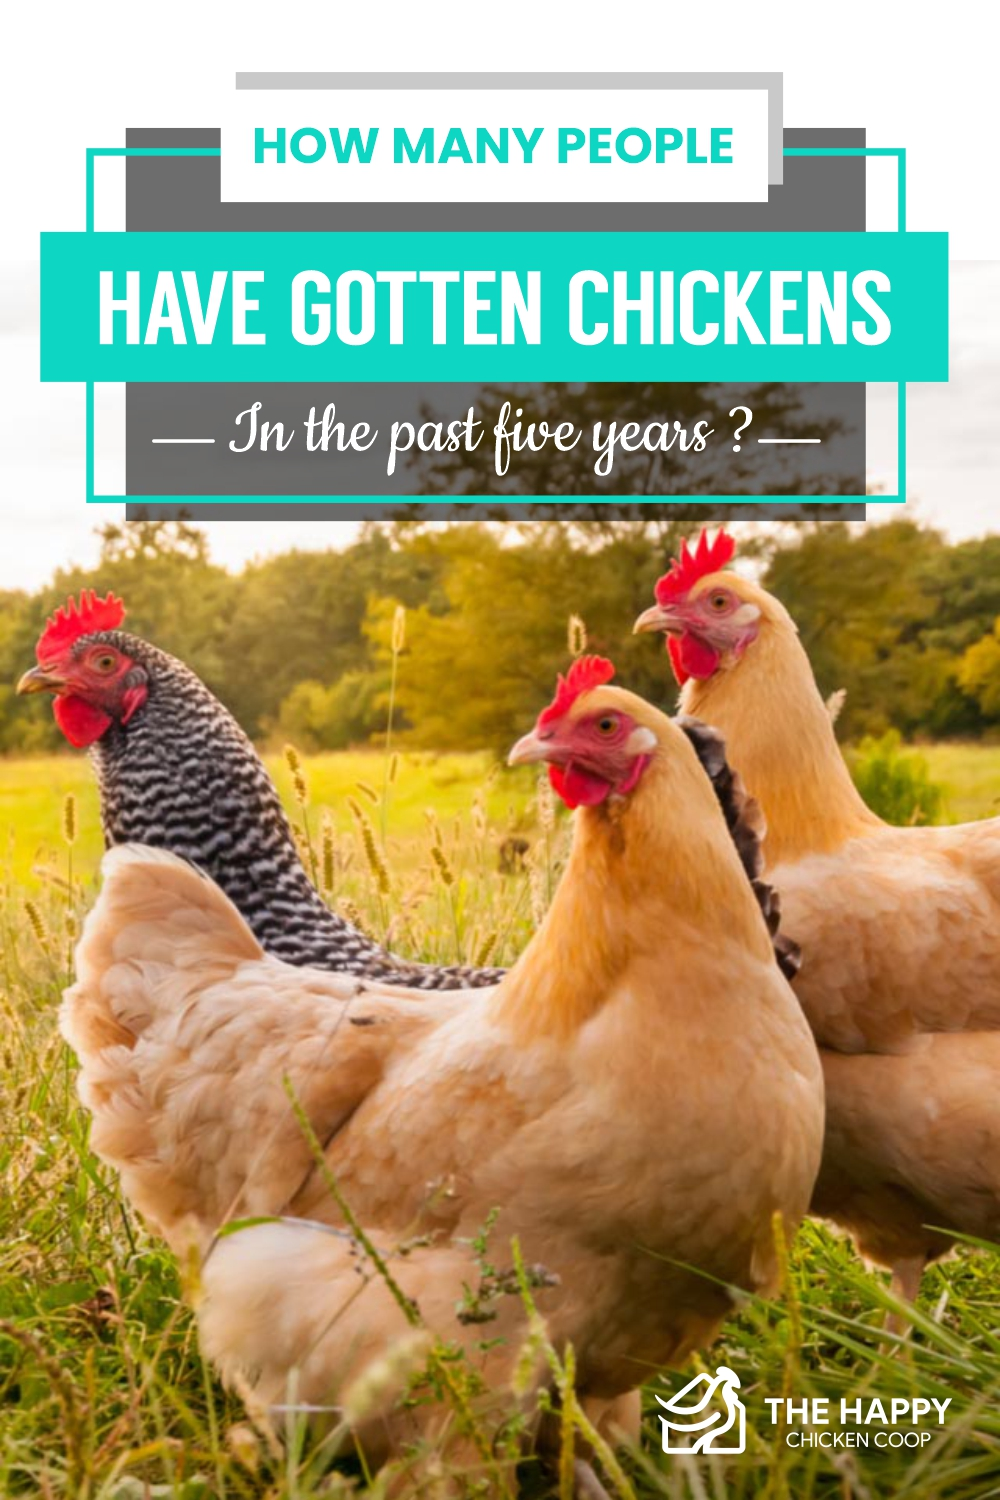 Chickens in the past 5 years